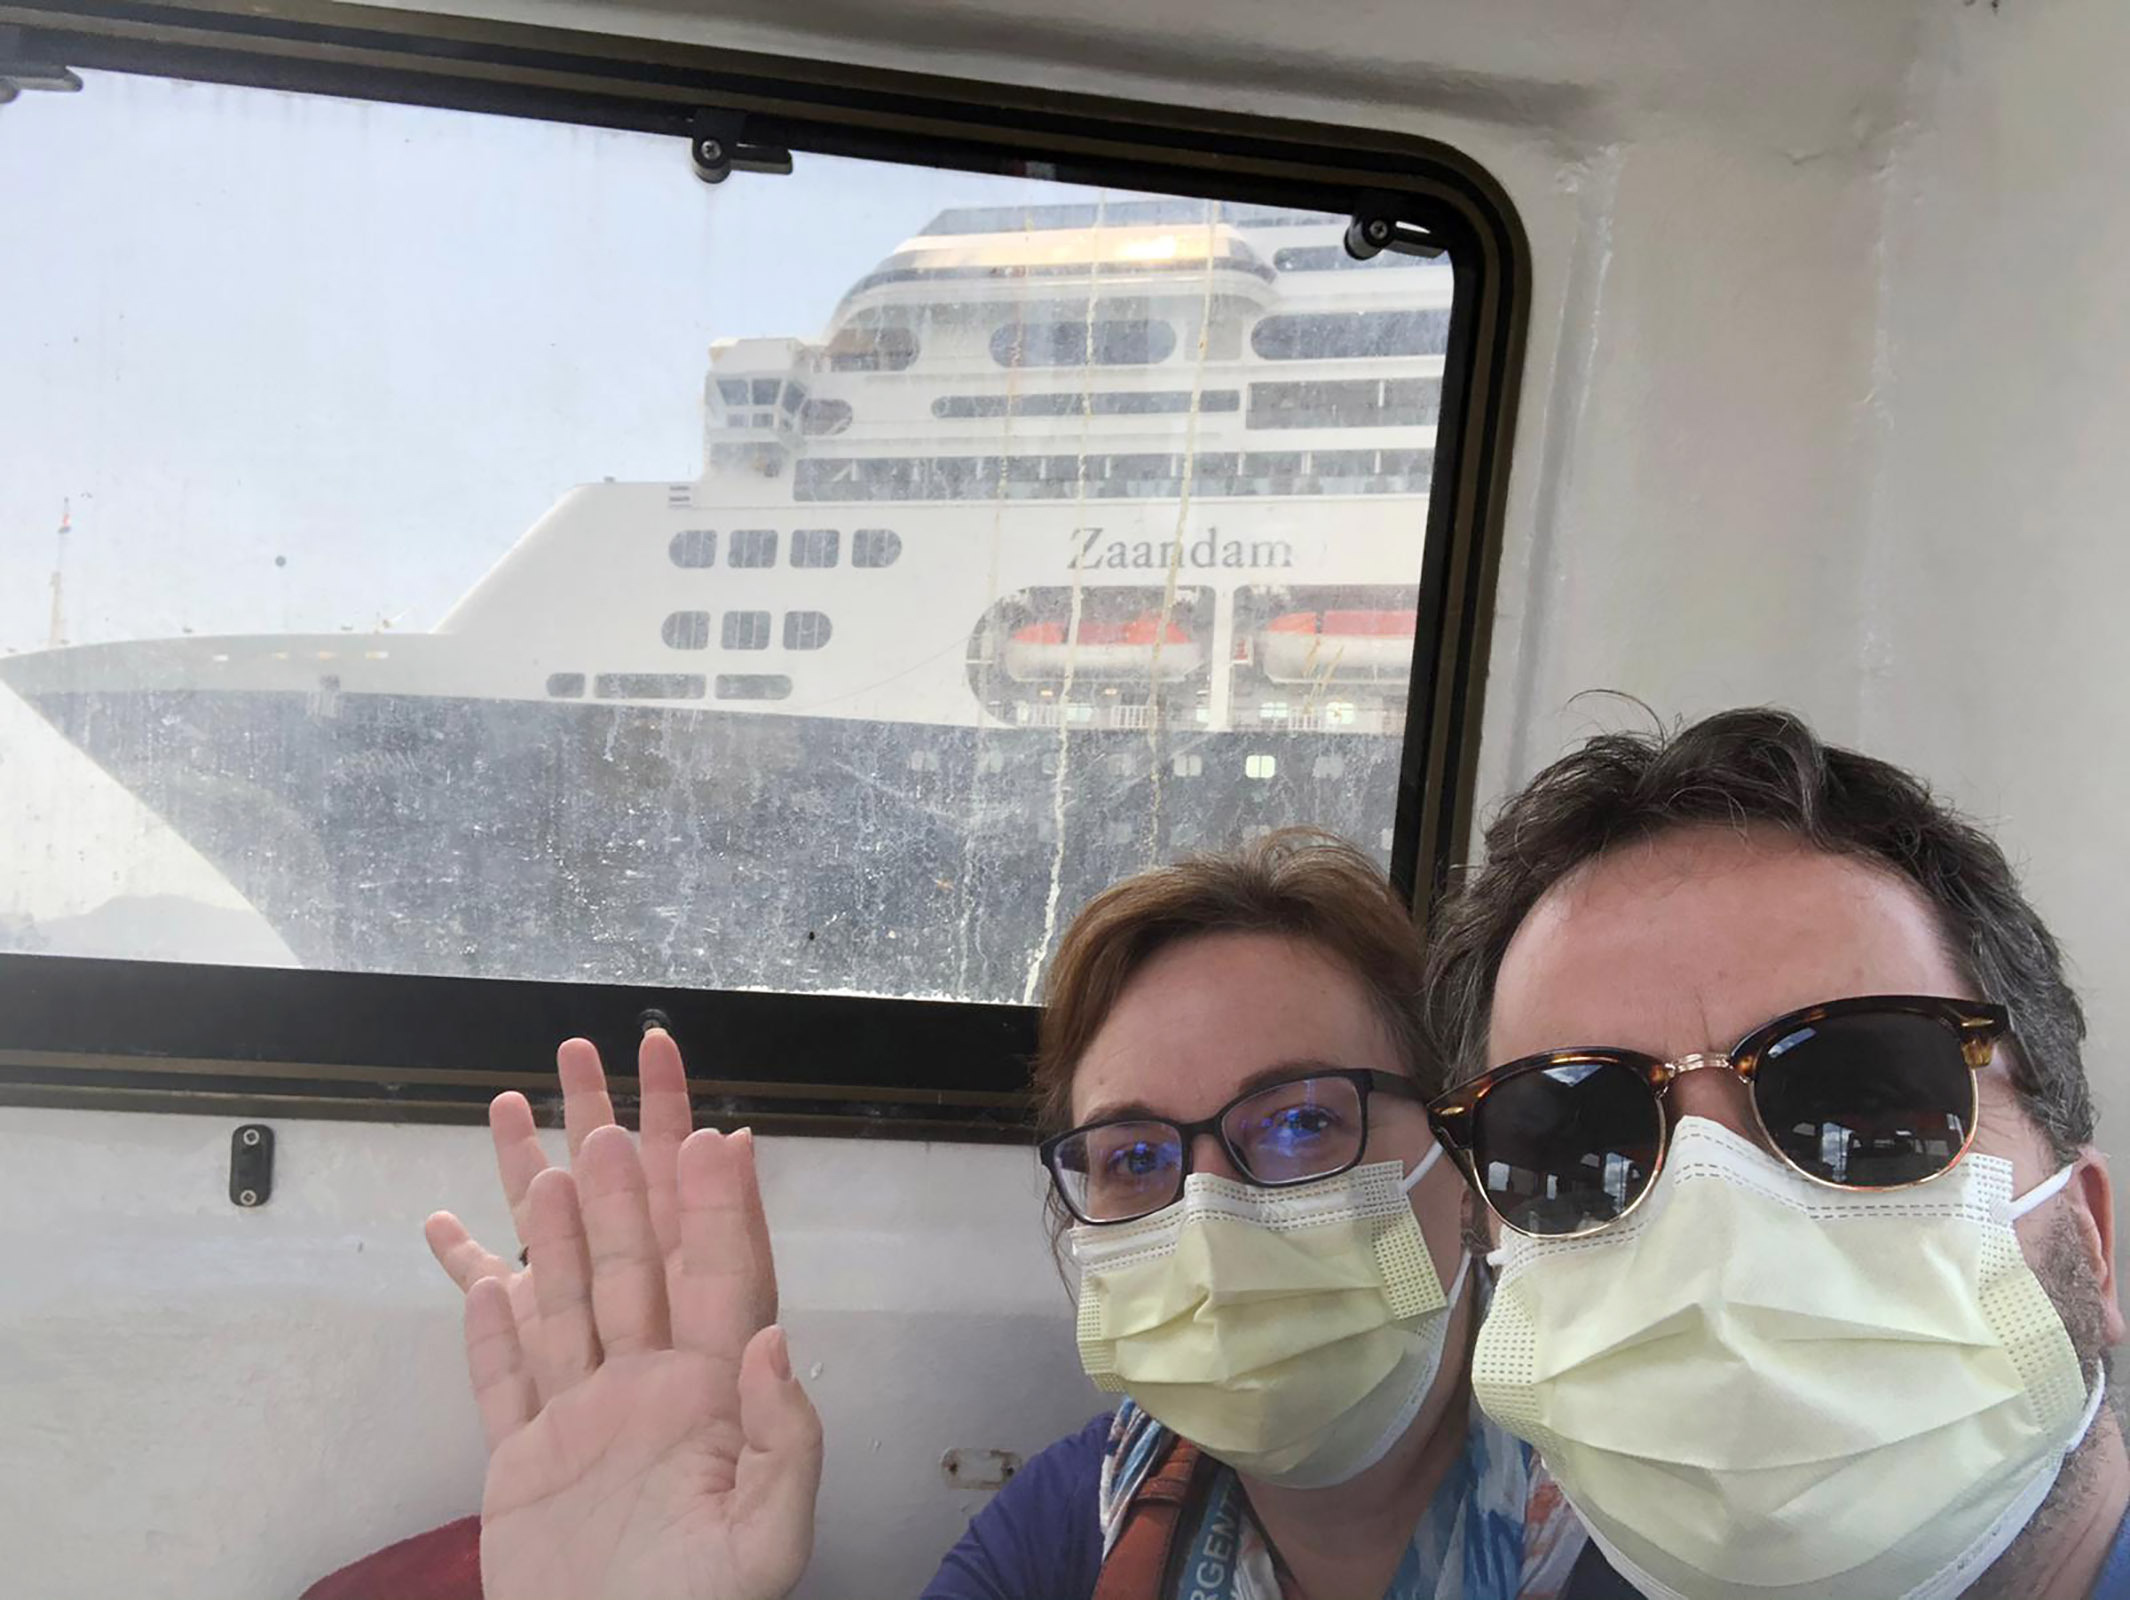 Laura Gabaroni and her husband Juan Huergo take a selfie on board a tender after they were evacuated from the Zaandam cruise ship near the Panama Canal on March 28, 2020.